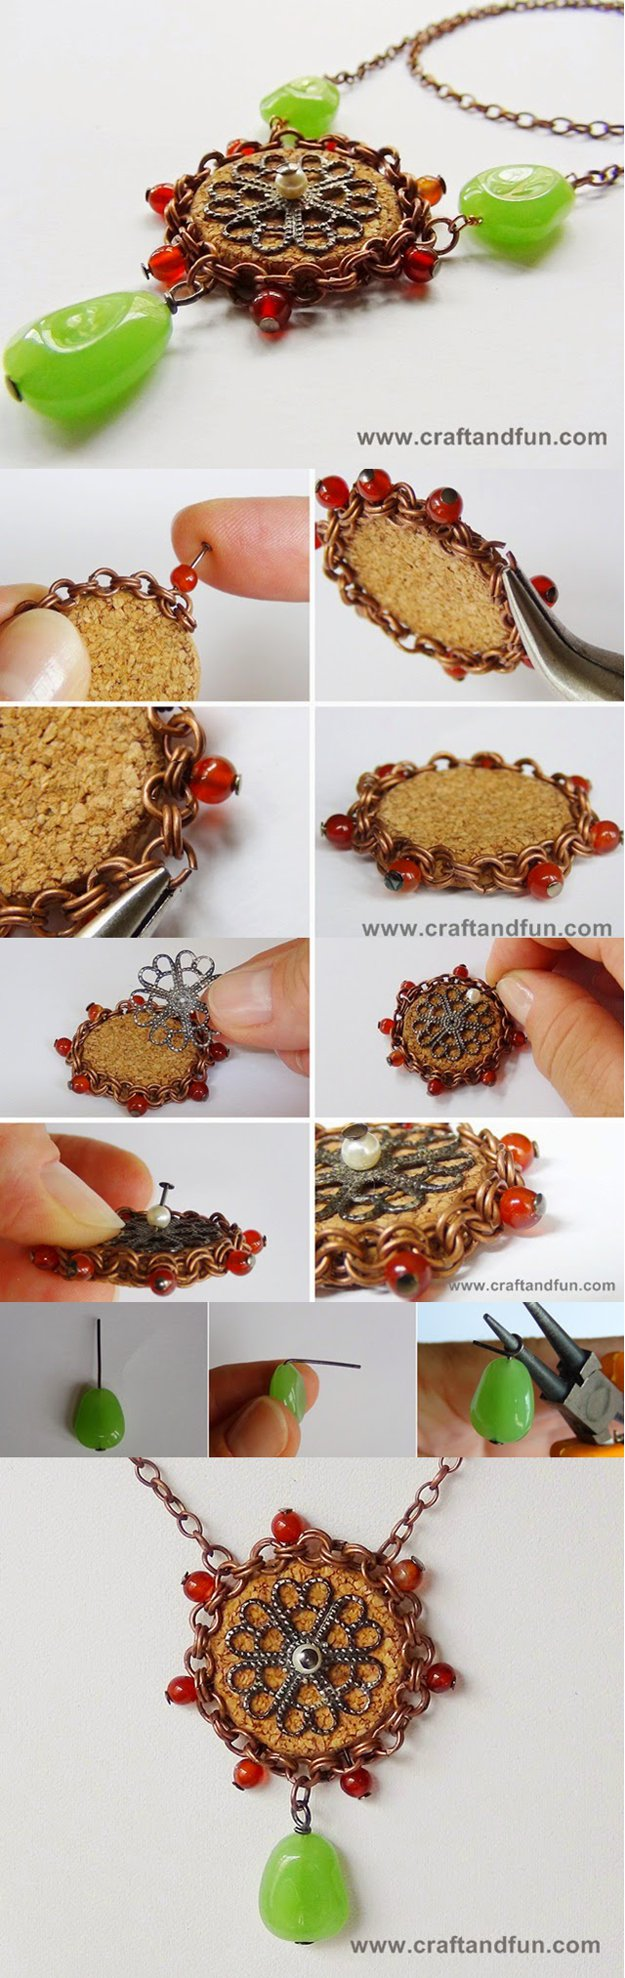 AD-DIY-Projects-You-Can-Do-With-Corks-20